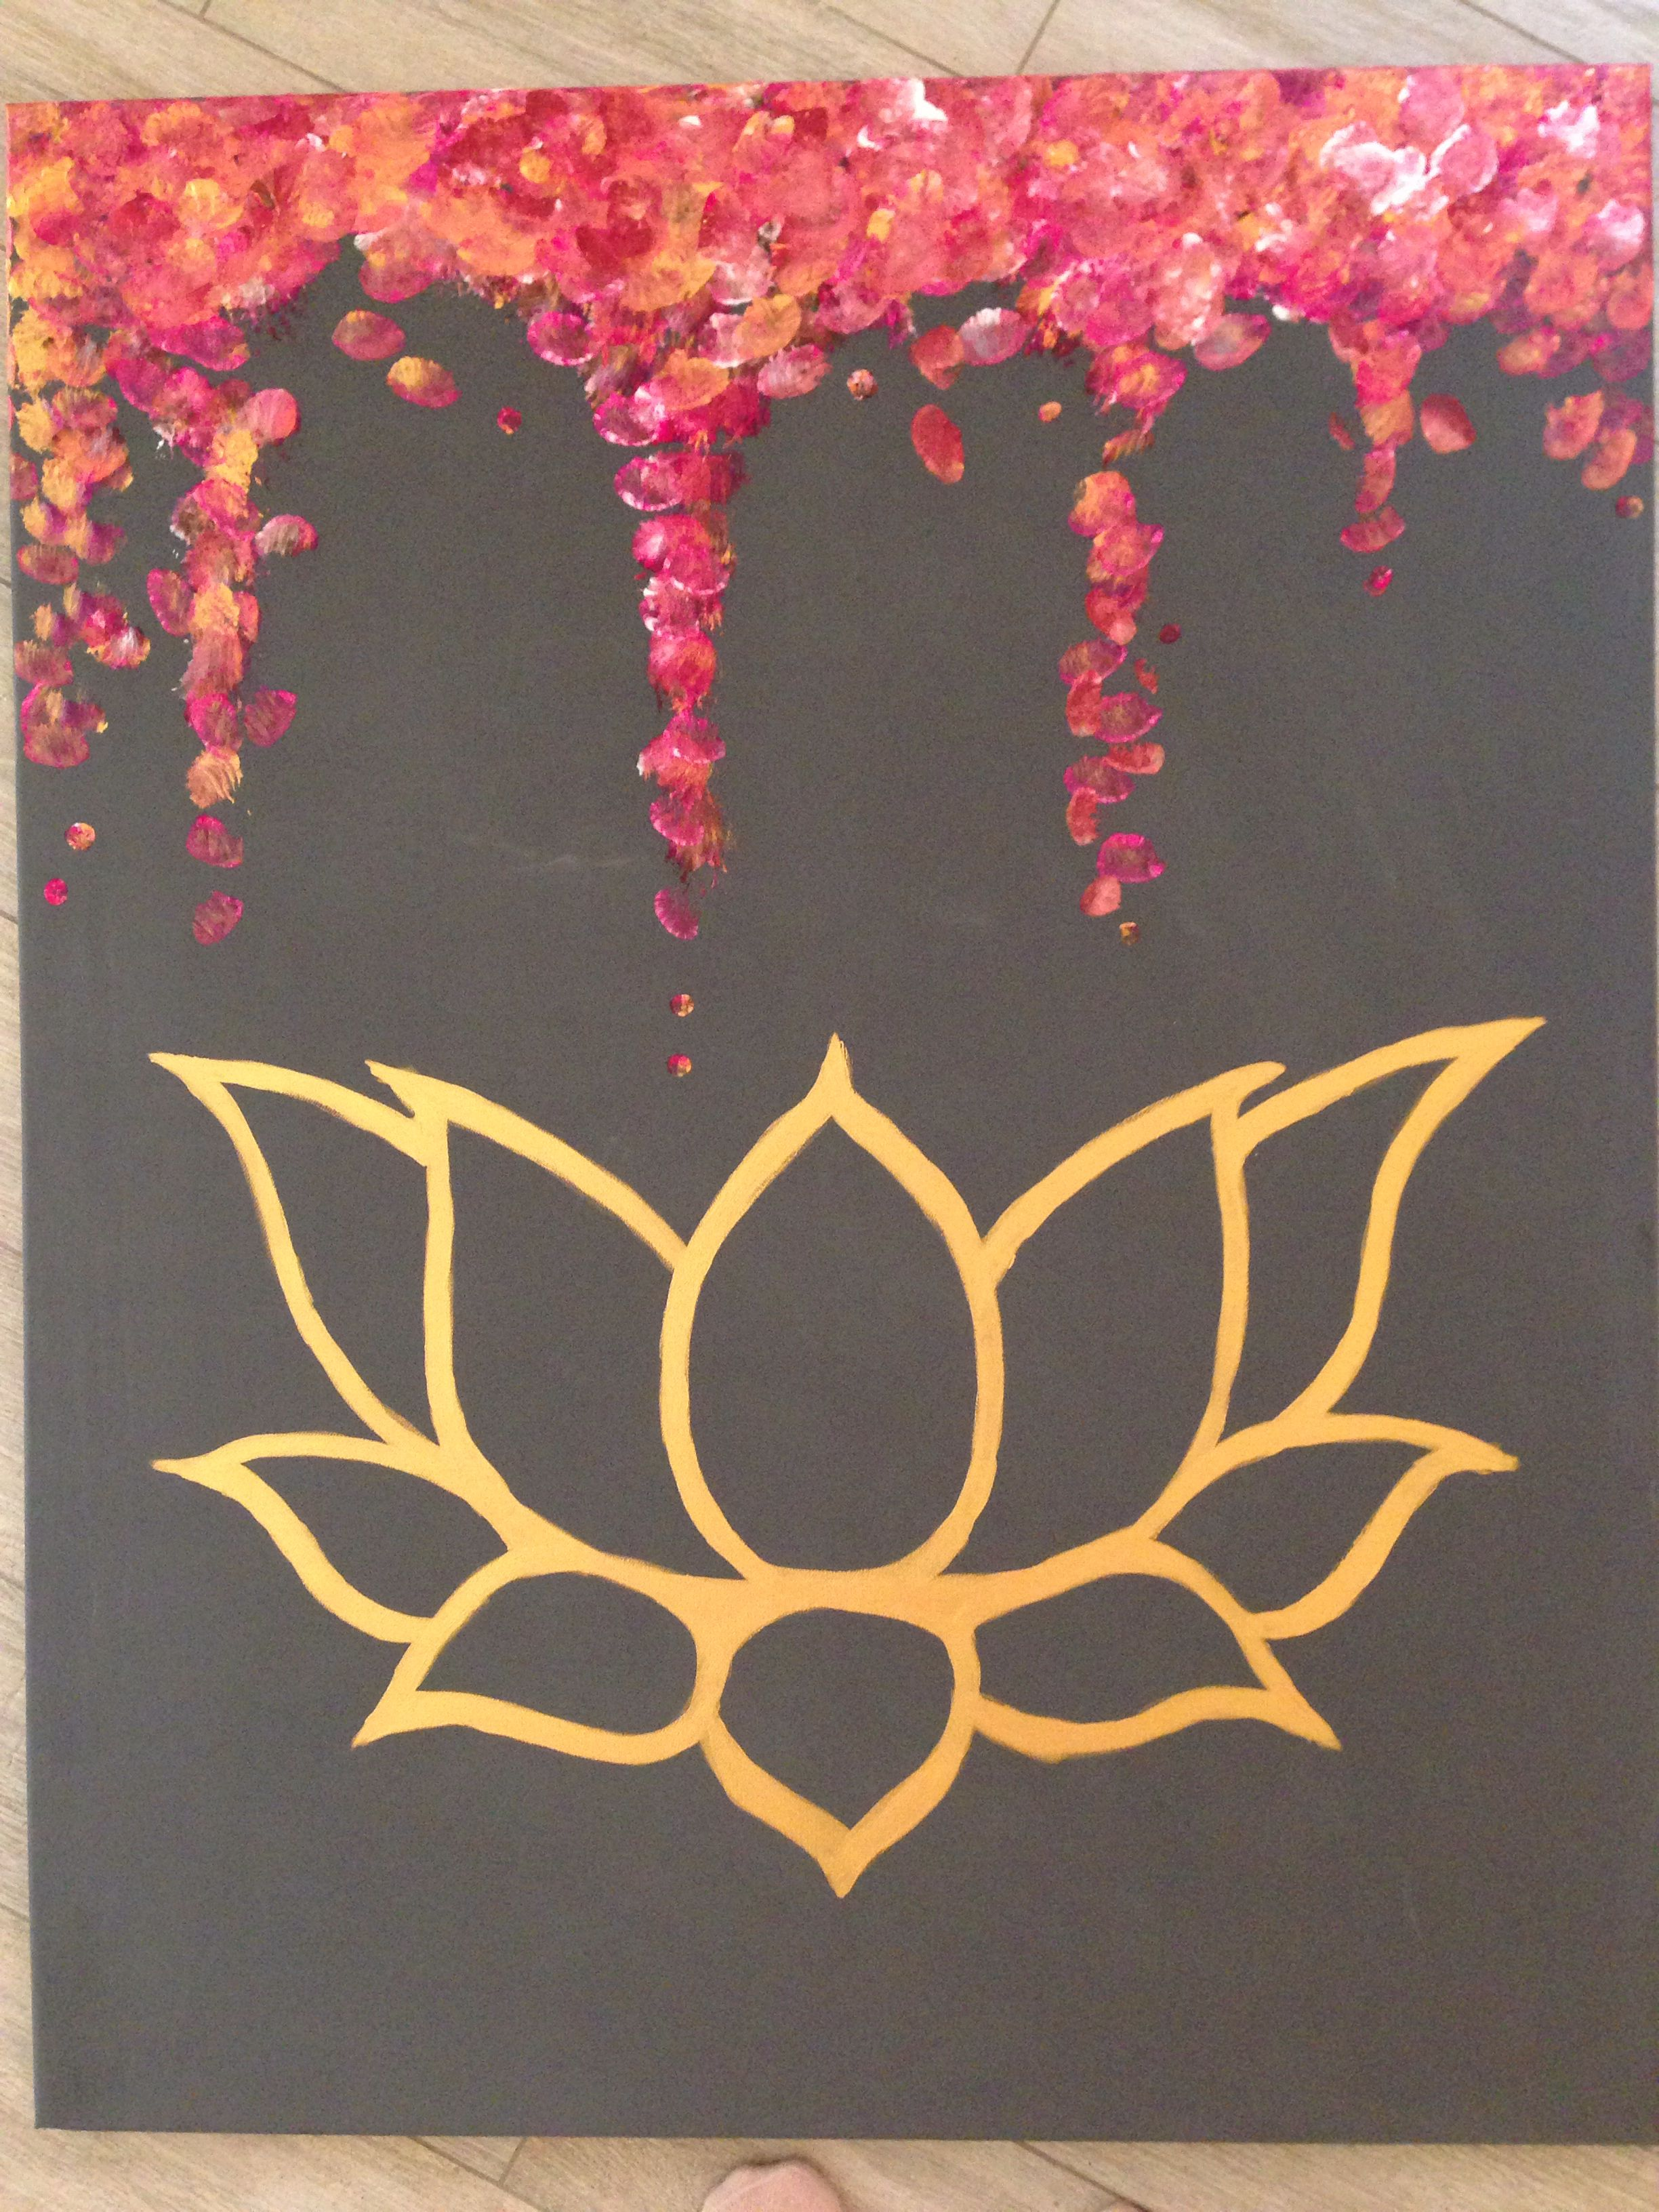 Zoe baysting art canvas modern contemporary lotus flower gold pop zoe baysting art canvas modern contemporary lotus flower gold pop painting chic large artwork print grey abstract geometric pink buddhist mindful izmirmasajfo